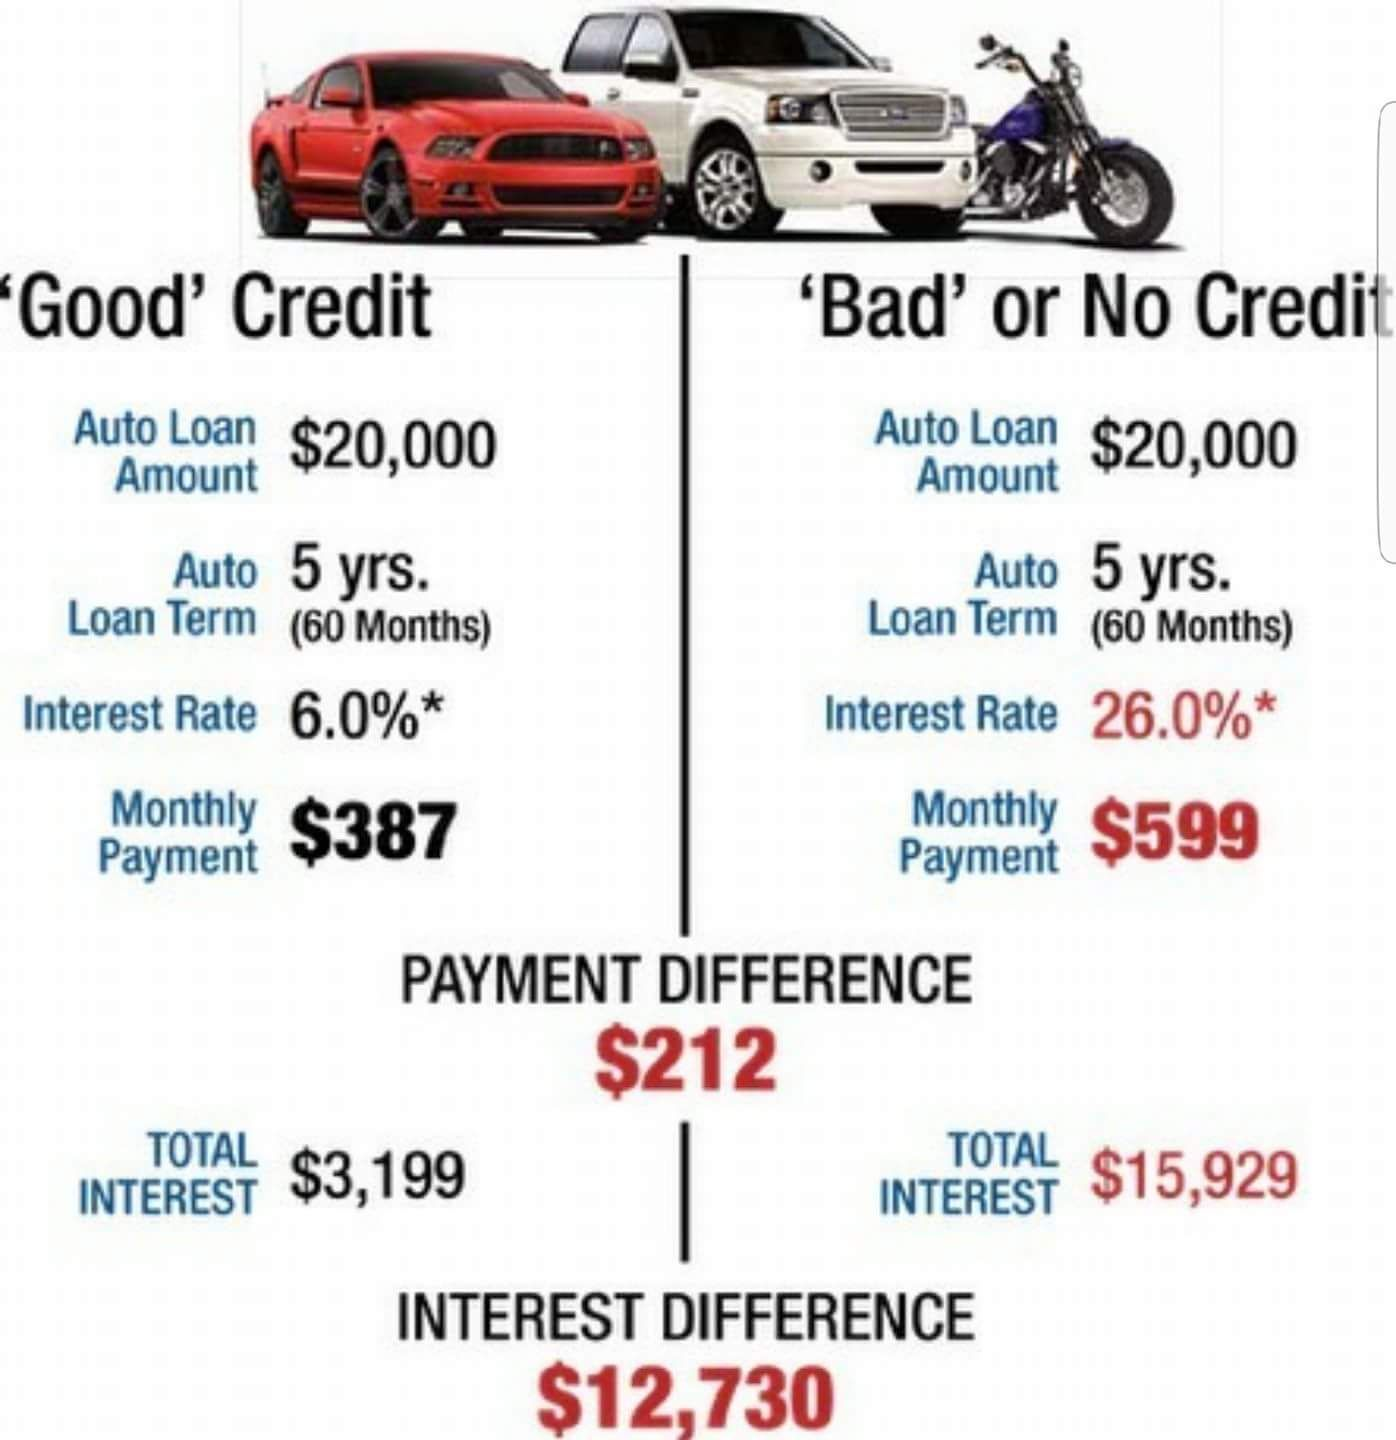 Bad Credit Is Expensive Learn How To Overcome It With Diy 26 Videos Plus More Good Credit Credit Repair Credit Repair Companies